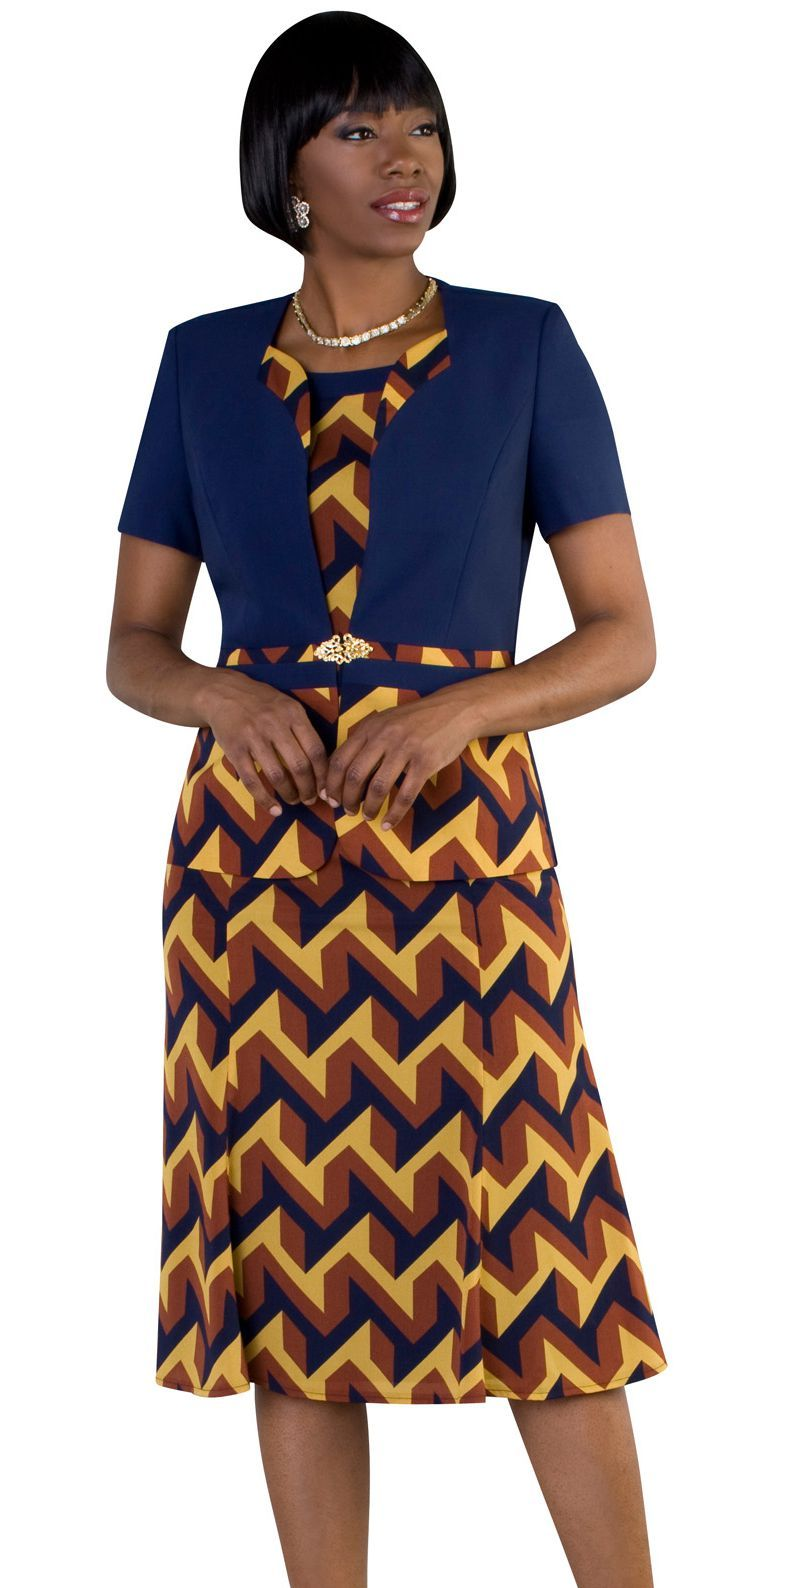 Tally Taylor Dress 9447-Navy/Multi - Church Suits For Less